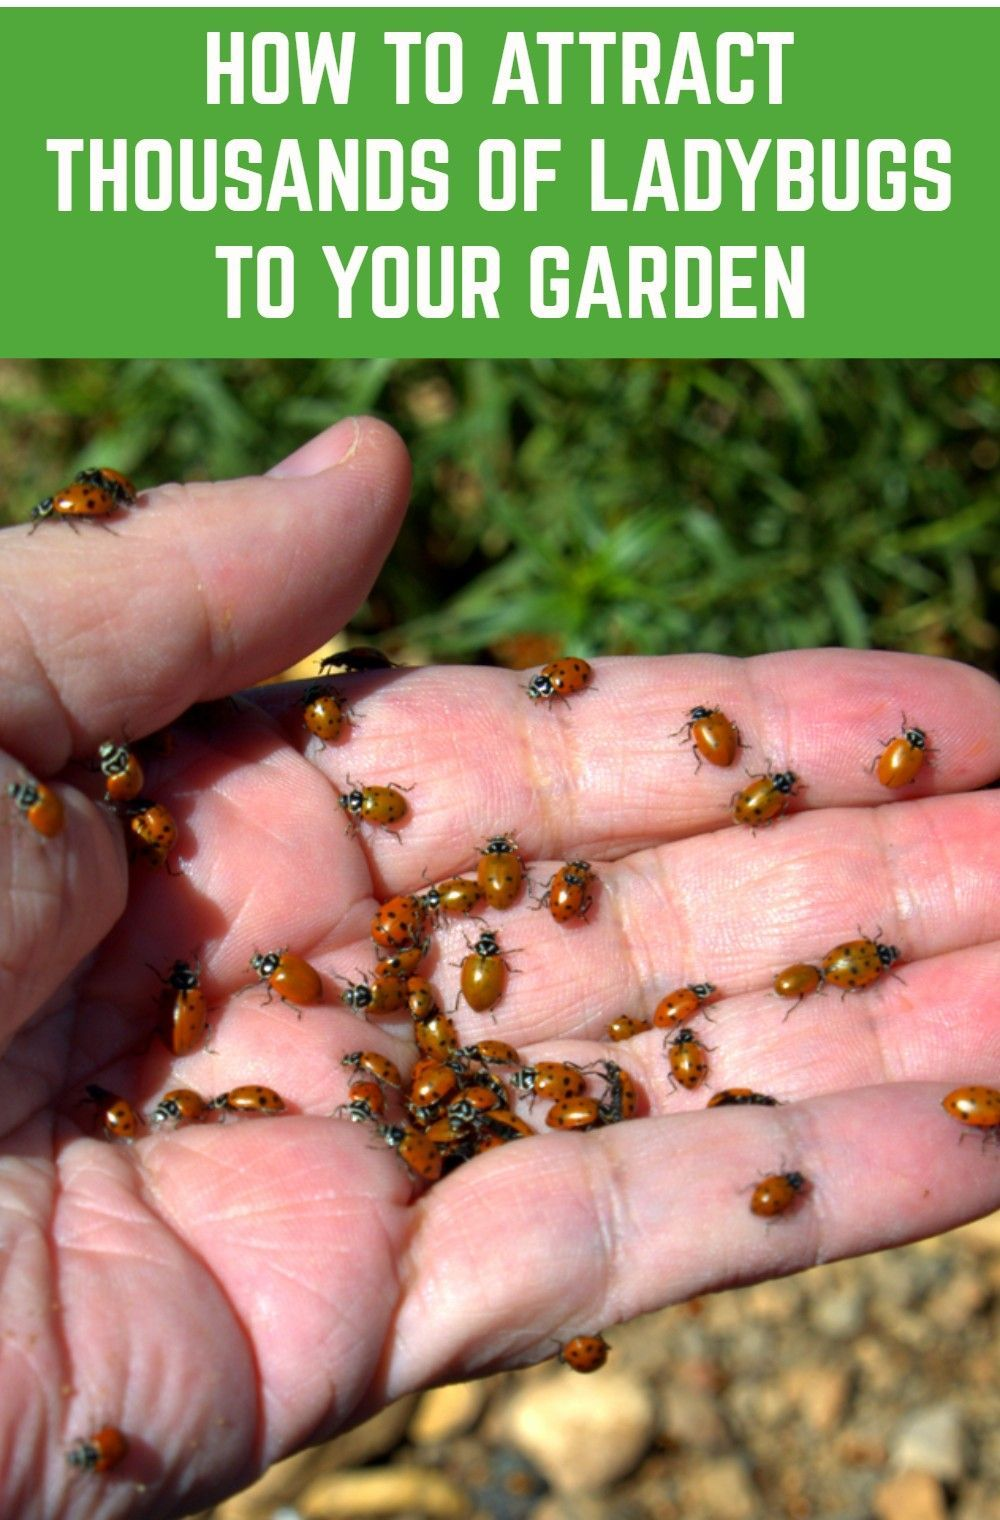 How To Attract Thousands Of Ladybugs To Your Garden & Keep Them There #outdoorherbgarden